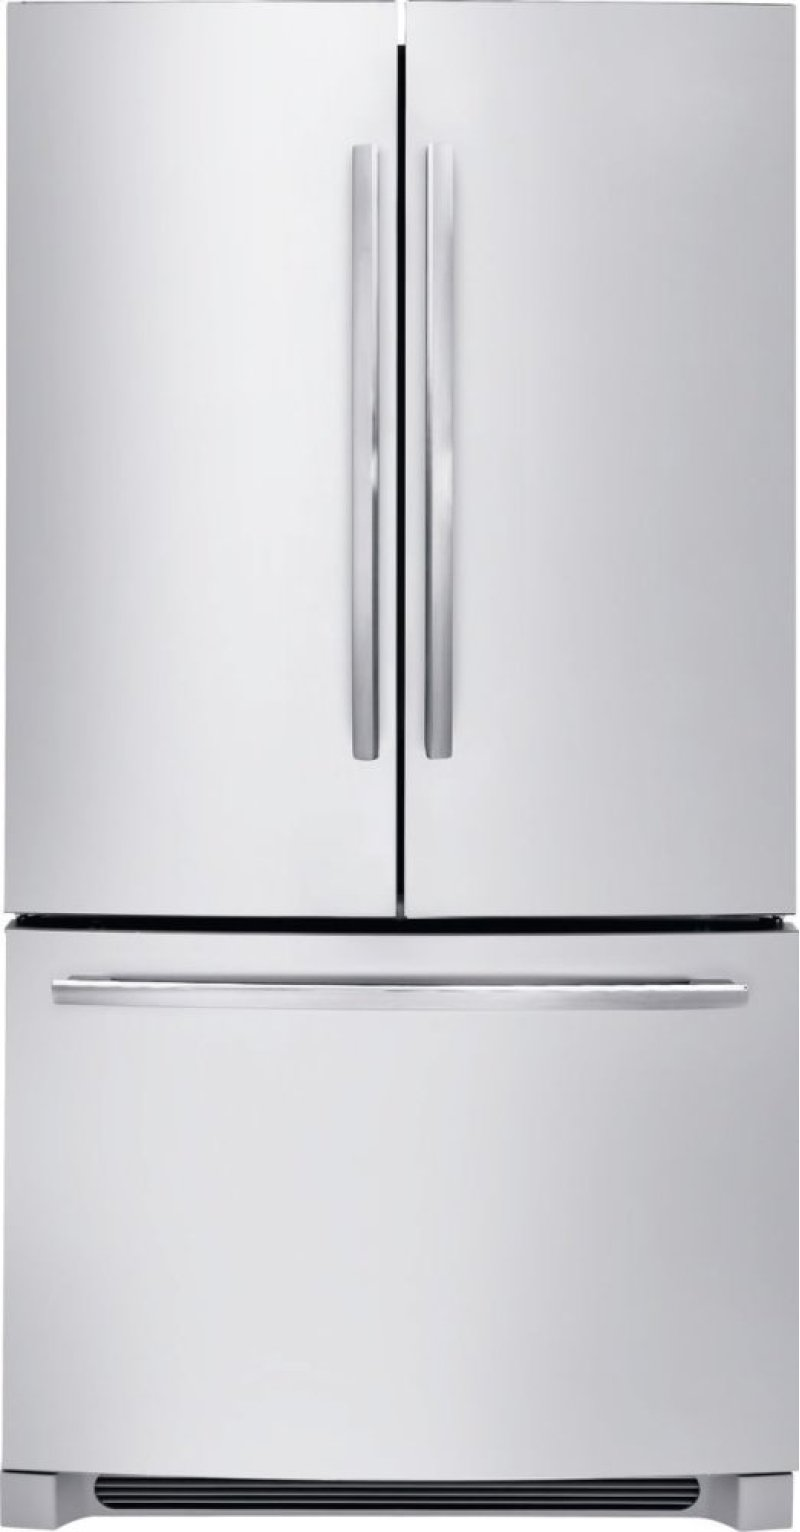 Fdbg2250ssdisplay in by frigidaire in bangor pa 224 cu ft ft french door counter depth refrigerator rubansaba